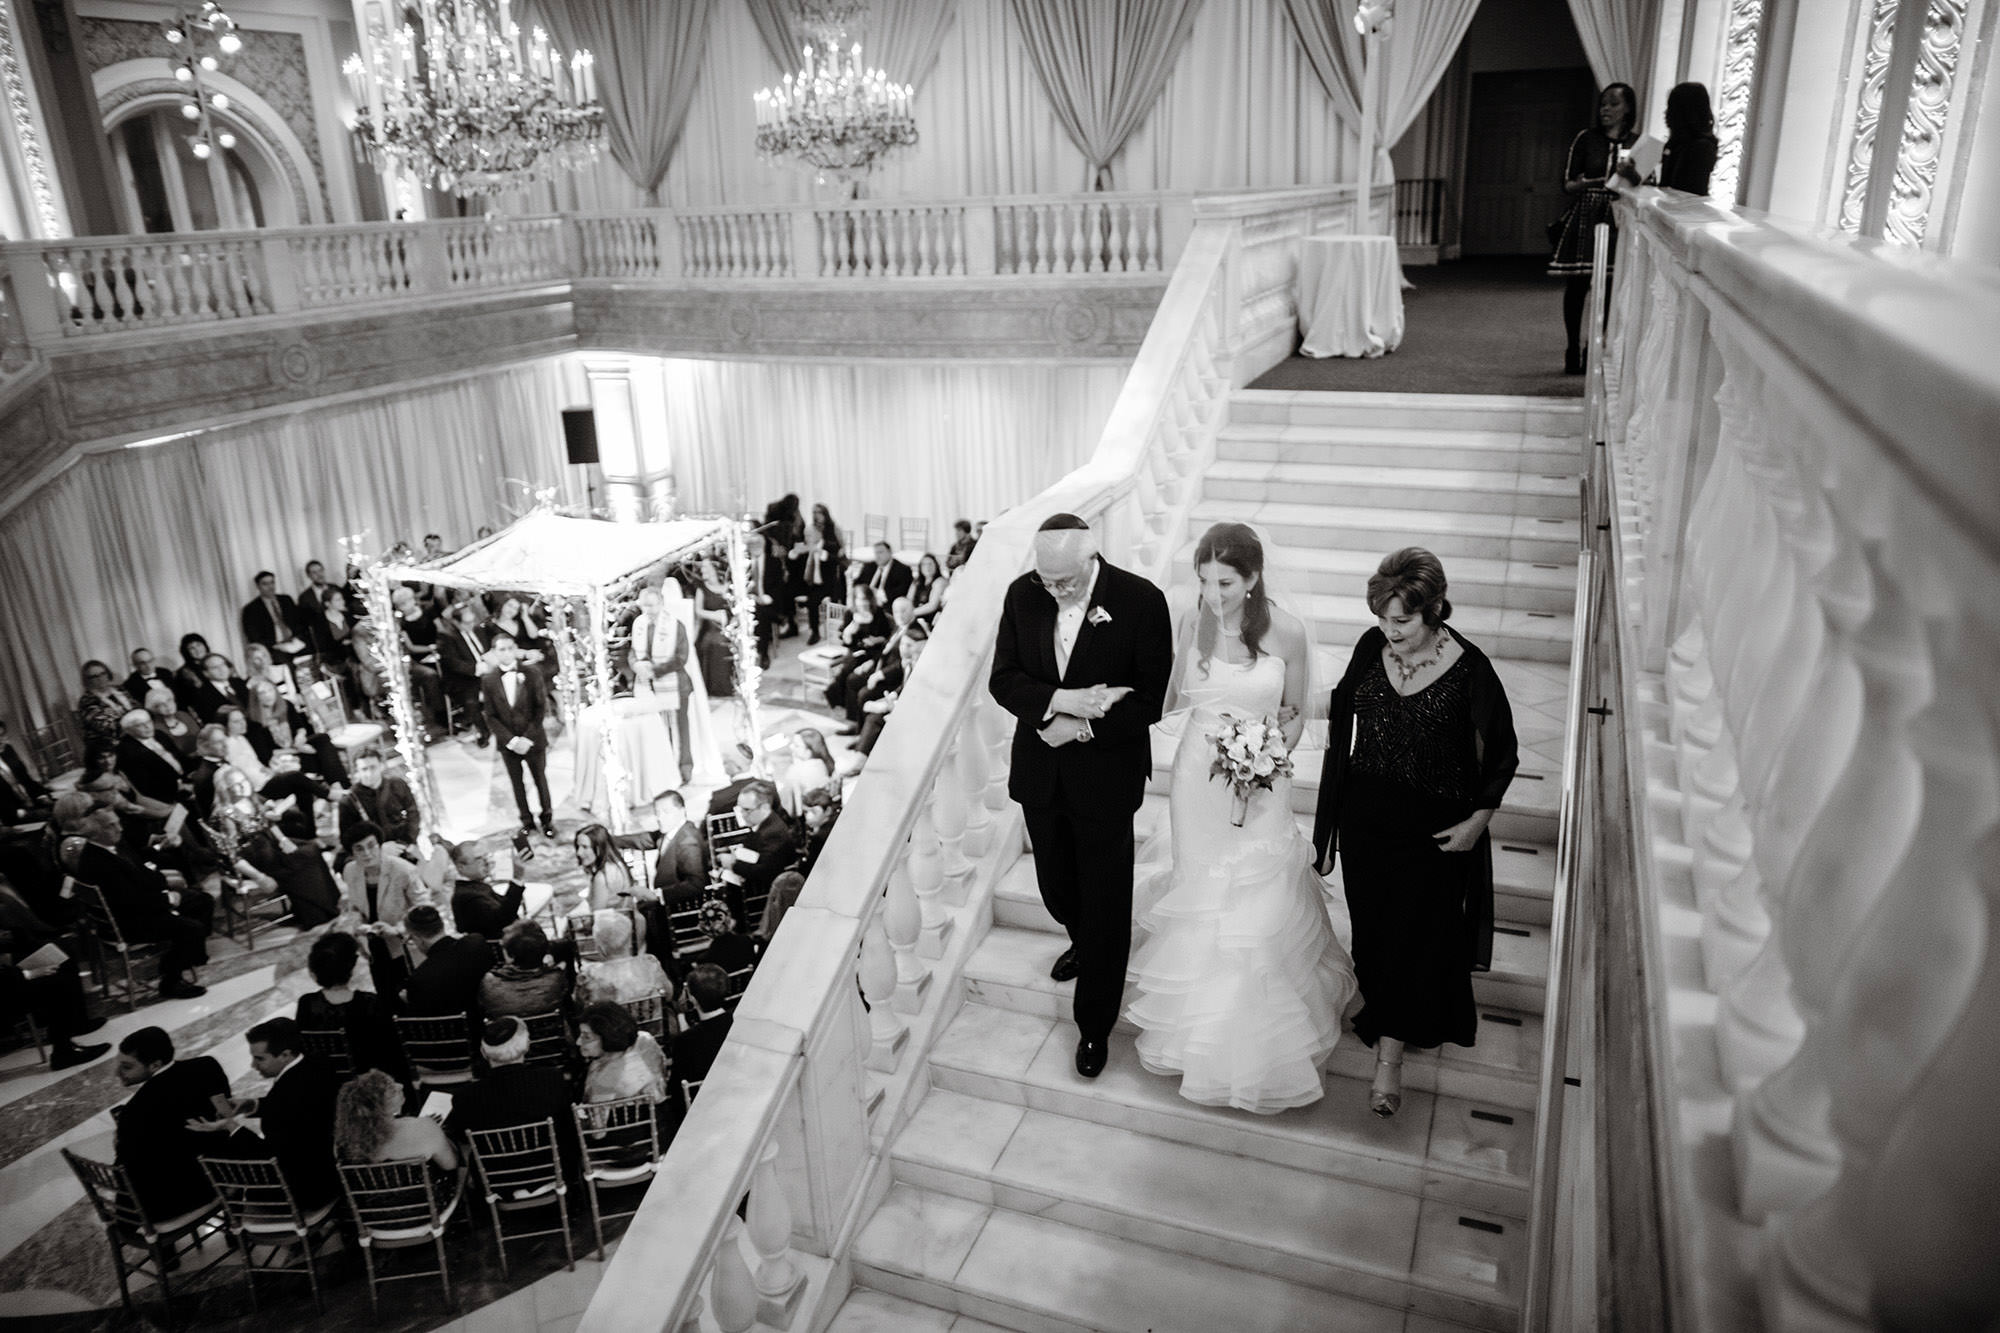 The bride is escorted down the steps of NMWA during her wedding ceremony.